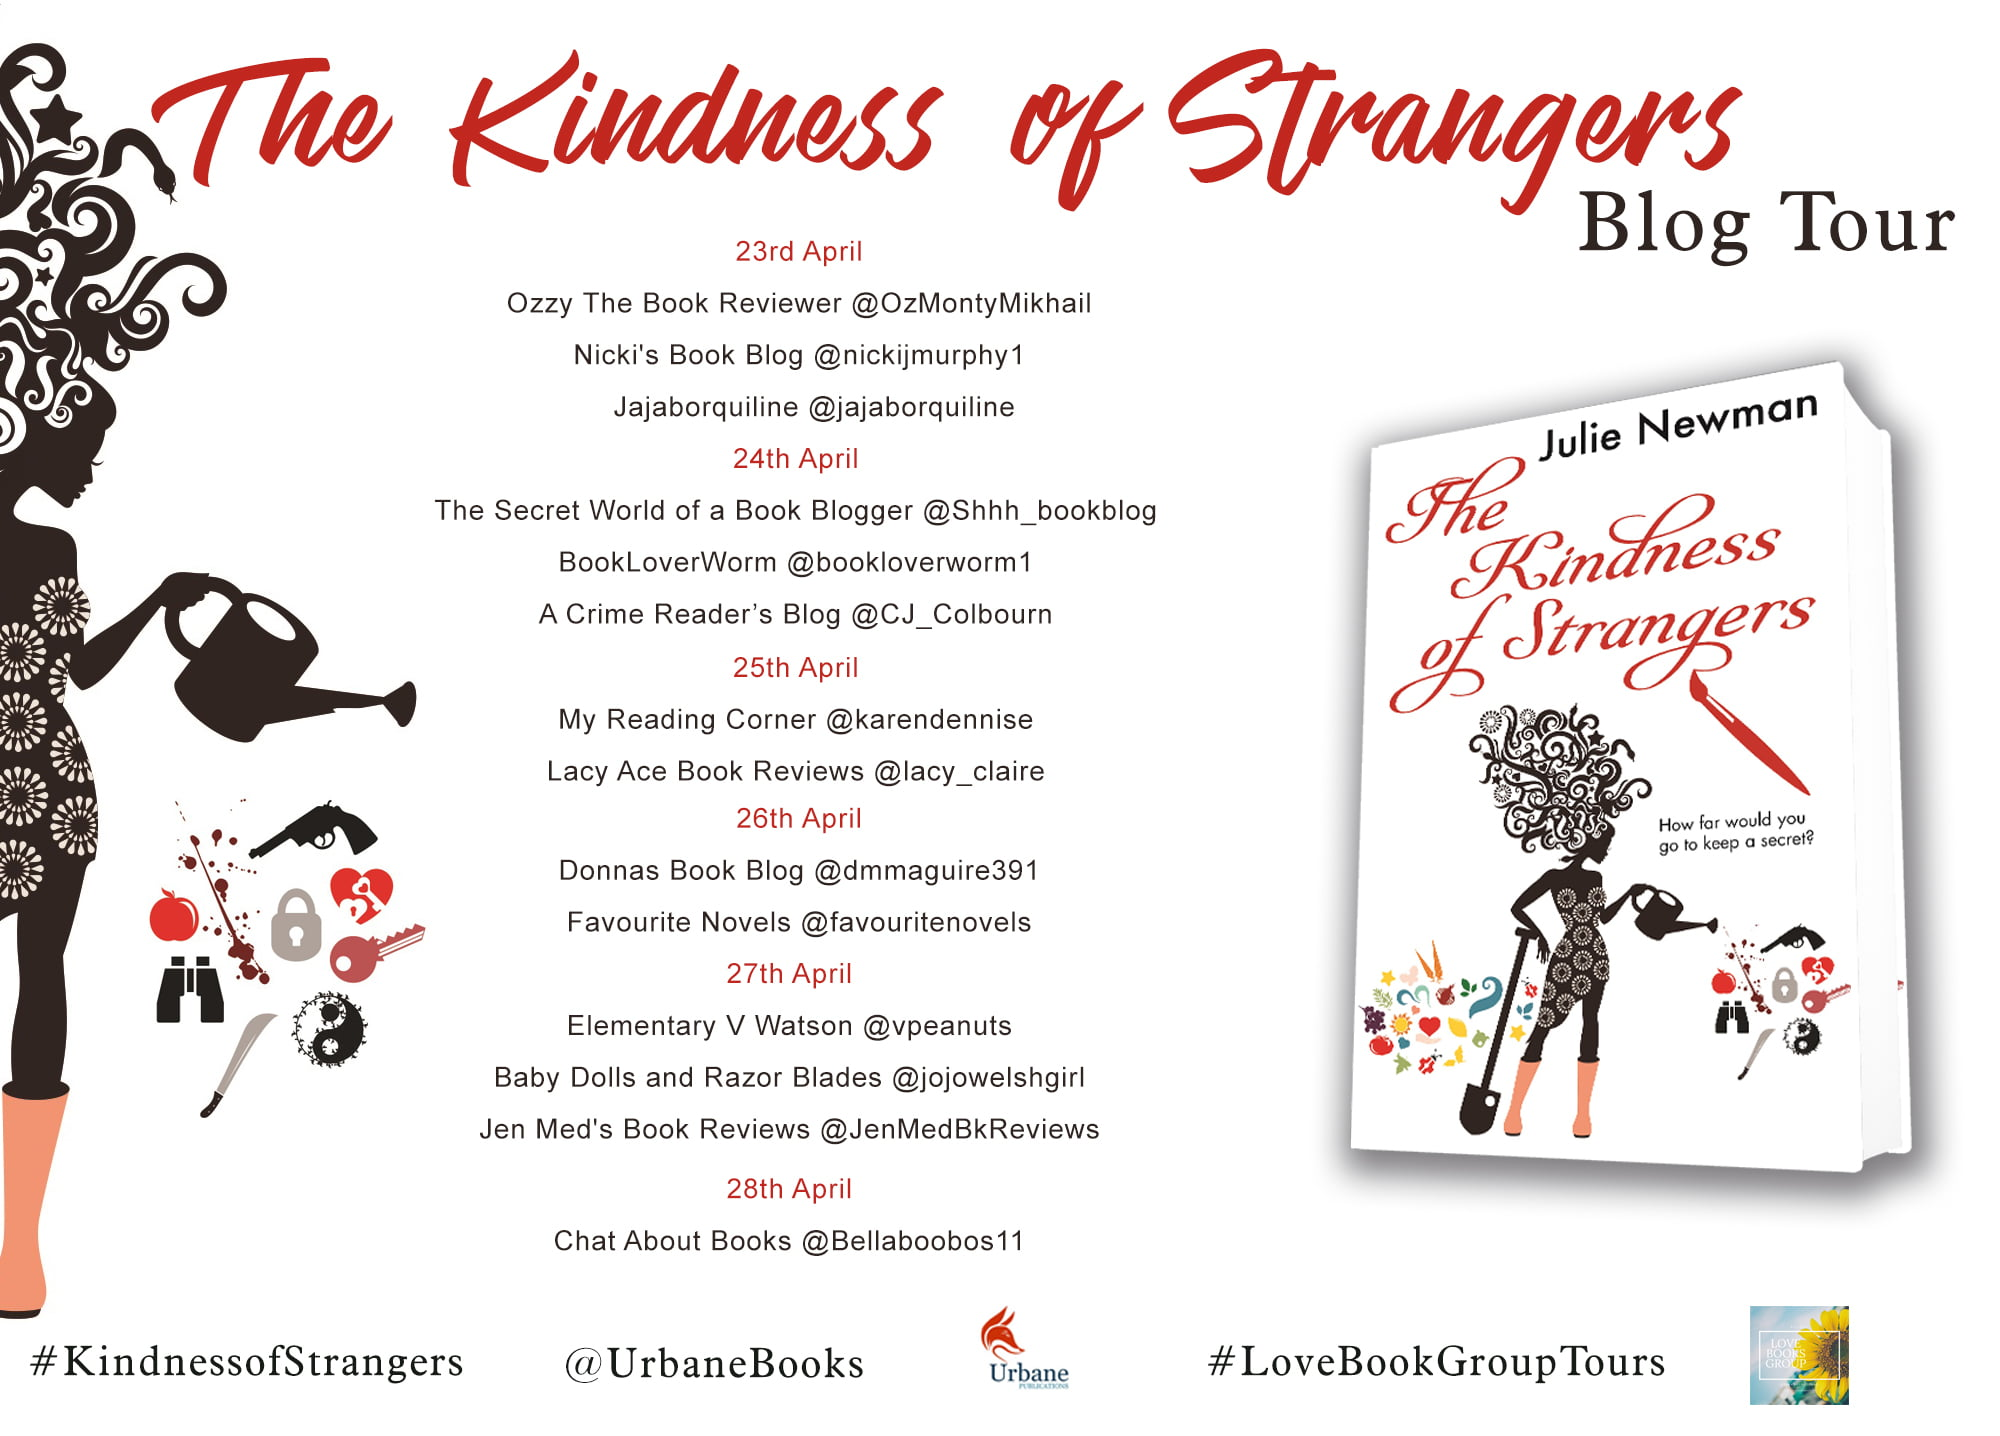 THE KINDNESS OF STRANGERS – JULIE NEWMAN